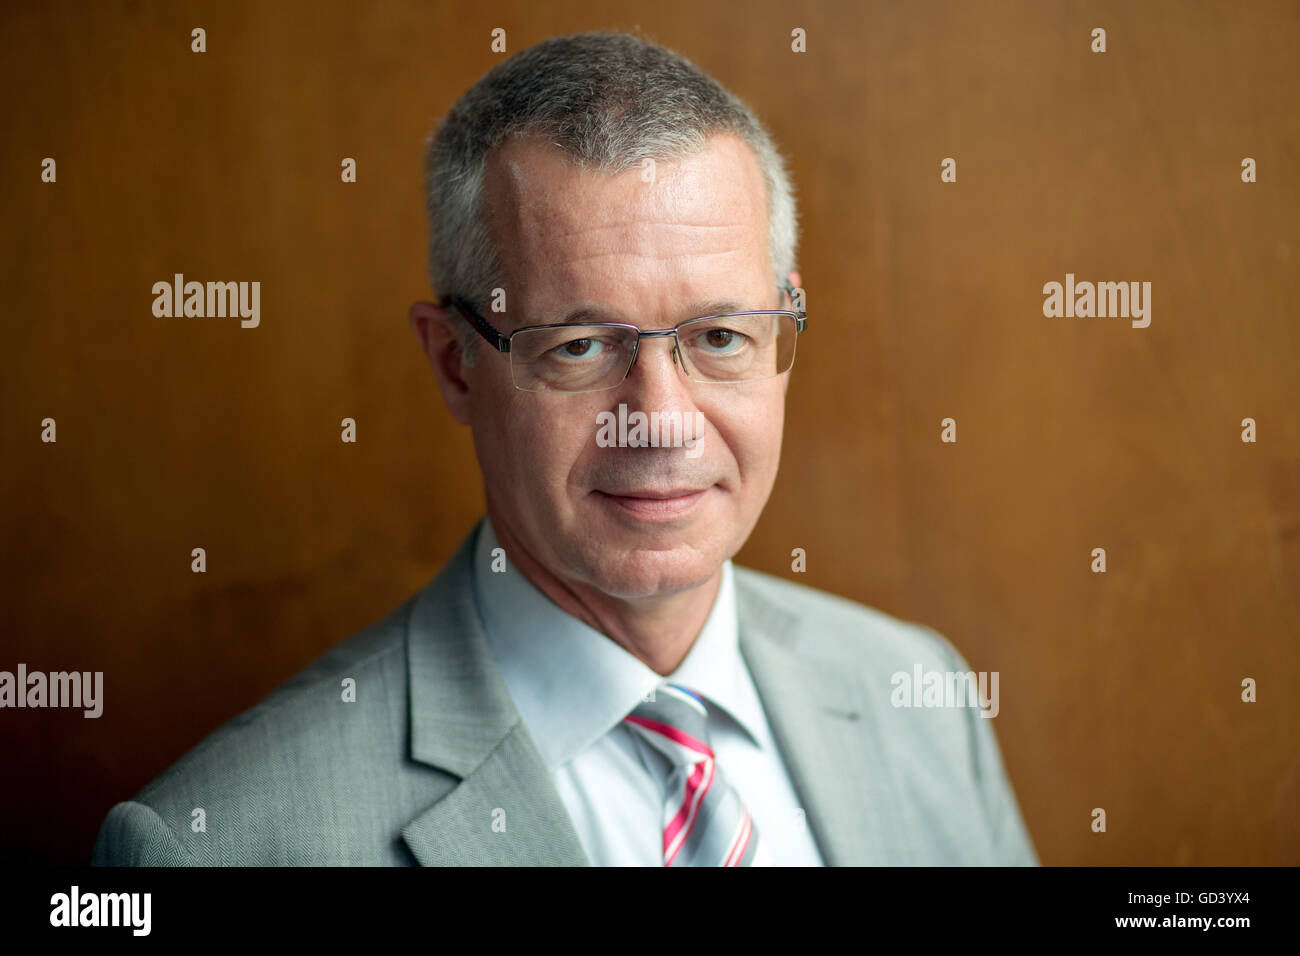 Berlin, Germany. 12th July, 2016. Rainald Becker, new editor-in-chief of the public service broadcaster ARD, photographed - Stock Image